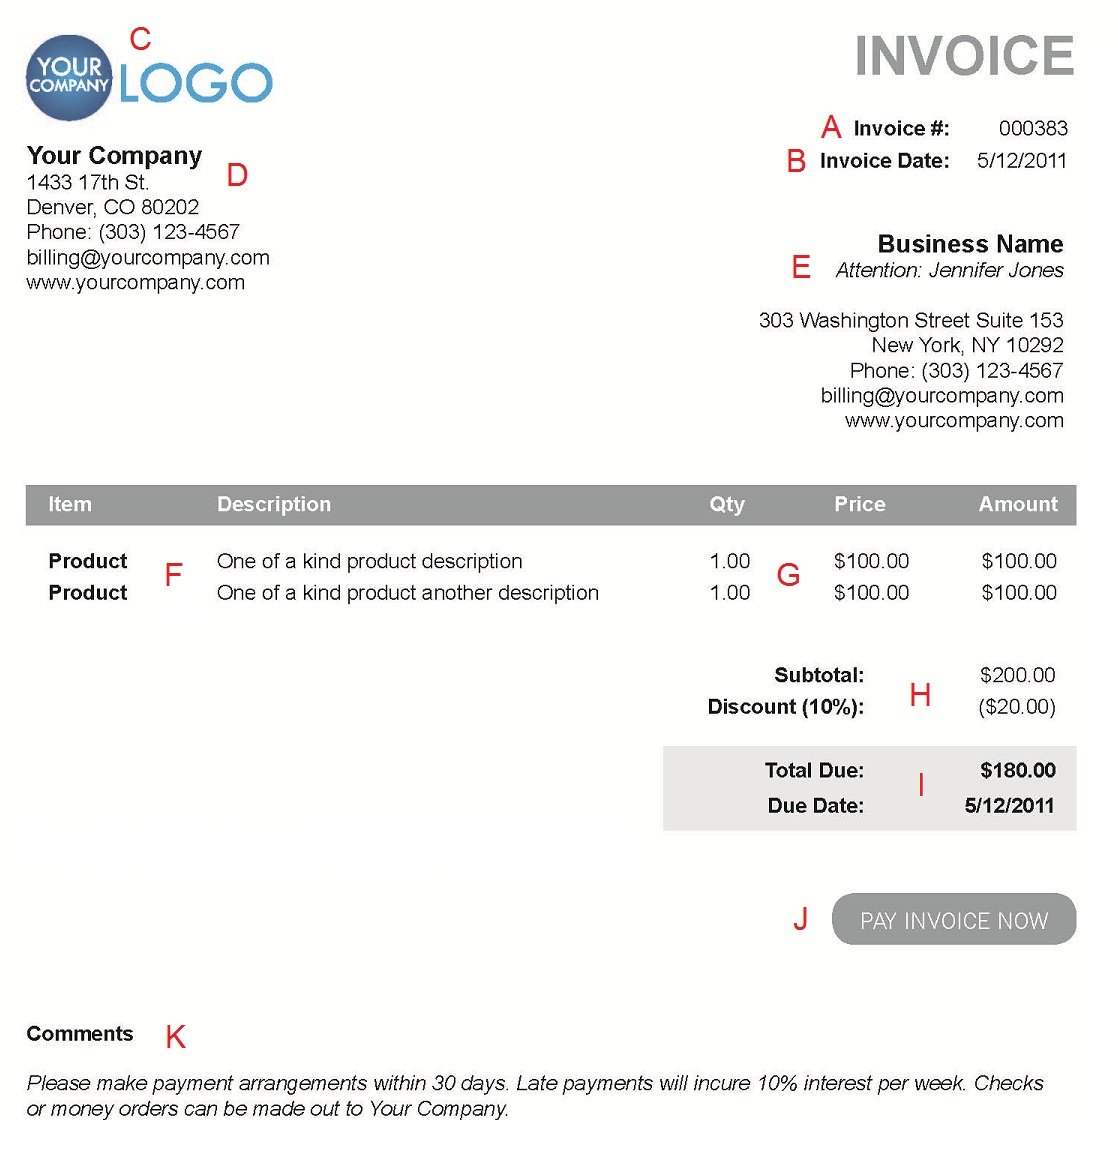 Opposenewapstandardsus  Splendid The  Different Sections Of An Electronic Payment Invoice With Glamorous A  With Endearing Invoice Discounting Rates Also Proforma Commercial Invoice In Addition What Is A Proforma Invoice Used For And Simple Billing Invoice As Well As Translation Invoice Sample Additionally Online Invoice Template Free From Paysimplecom With Opposenewapstandardsus  Glamorous The  Different Sections Of An Electronic Payment Invoice With Endearing A  And Splendid Invoice Discounting Rates Also Proforma Commercial Invoice In Addition What Is A Proforma Invoice Used For From Paysimplecom